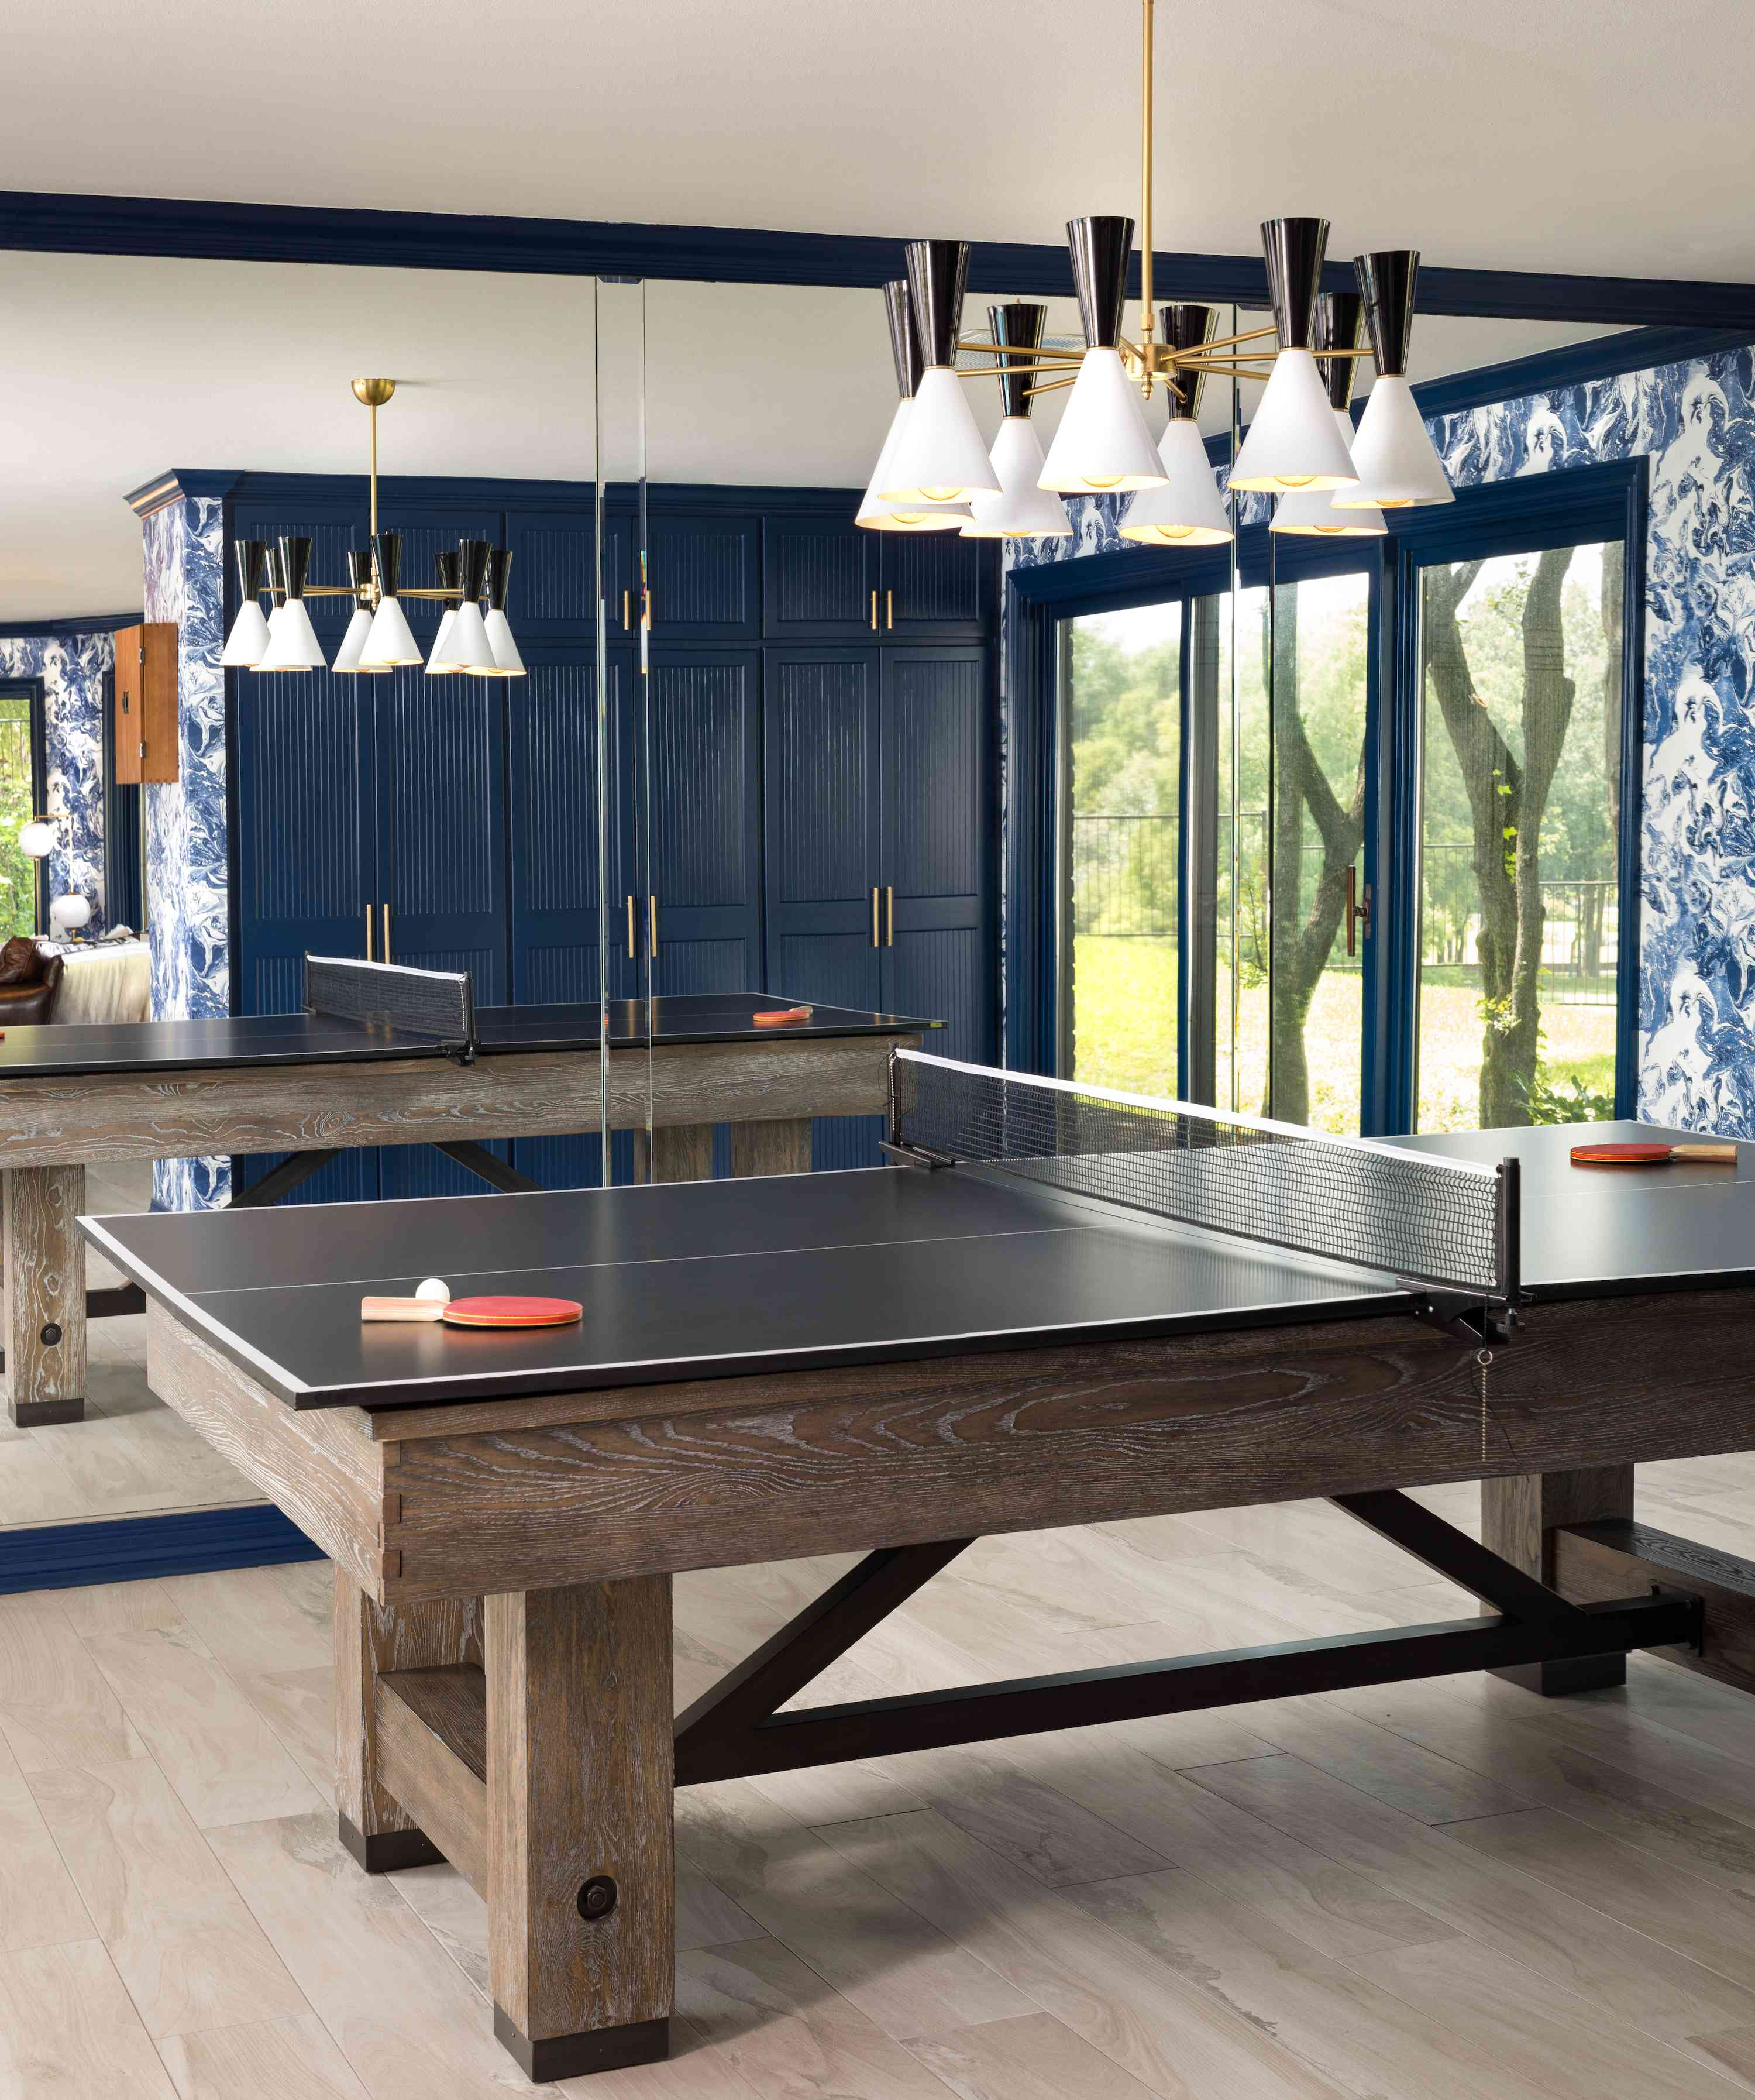 Ping pong table in middle of room.